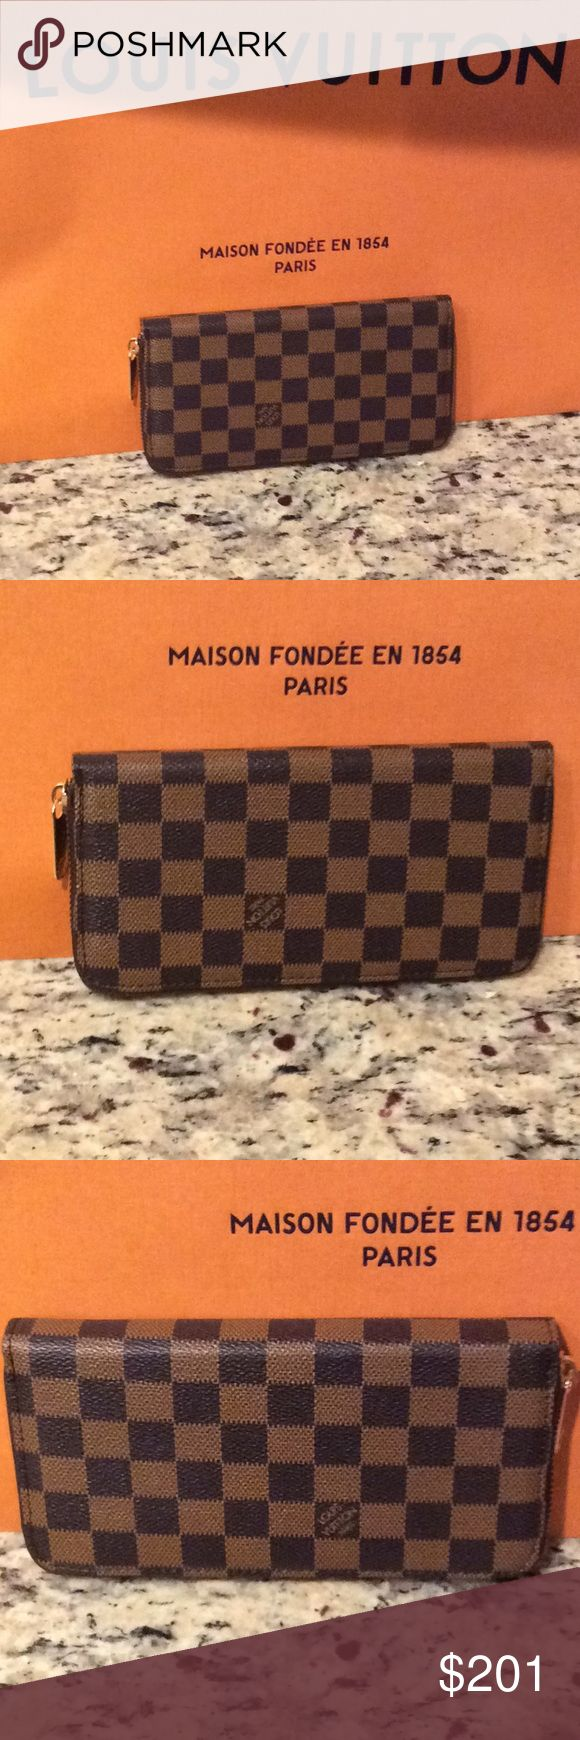 new Louis Vuitton damier full zip wallet Just make an offer All reasonable offers will be considered I will go much lower than the listed rate I have several to sell  This is a brand new Louis Vuitton damier full zip wallet with tons of card holding slots and a zipper inside for coins and cash this is a good quality INSPIRED or NOT AUTH piece i think bc i can't find a date stamp in it so I will sell this piece at a fraction of the cost of a real. The shopping bag in the background is not…